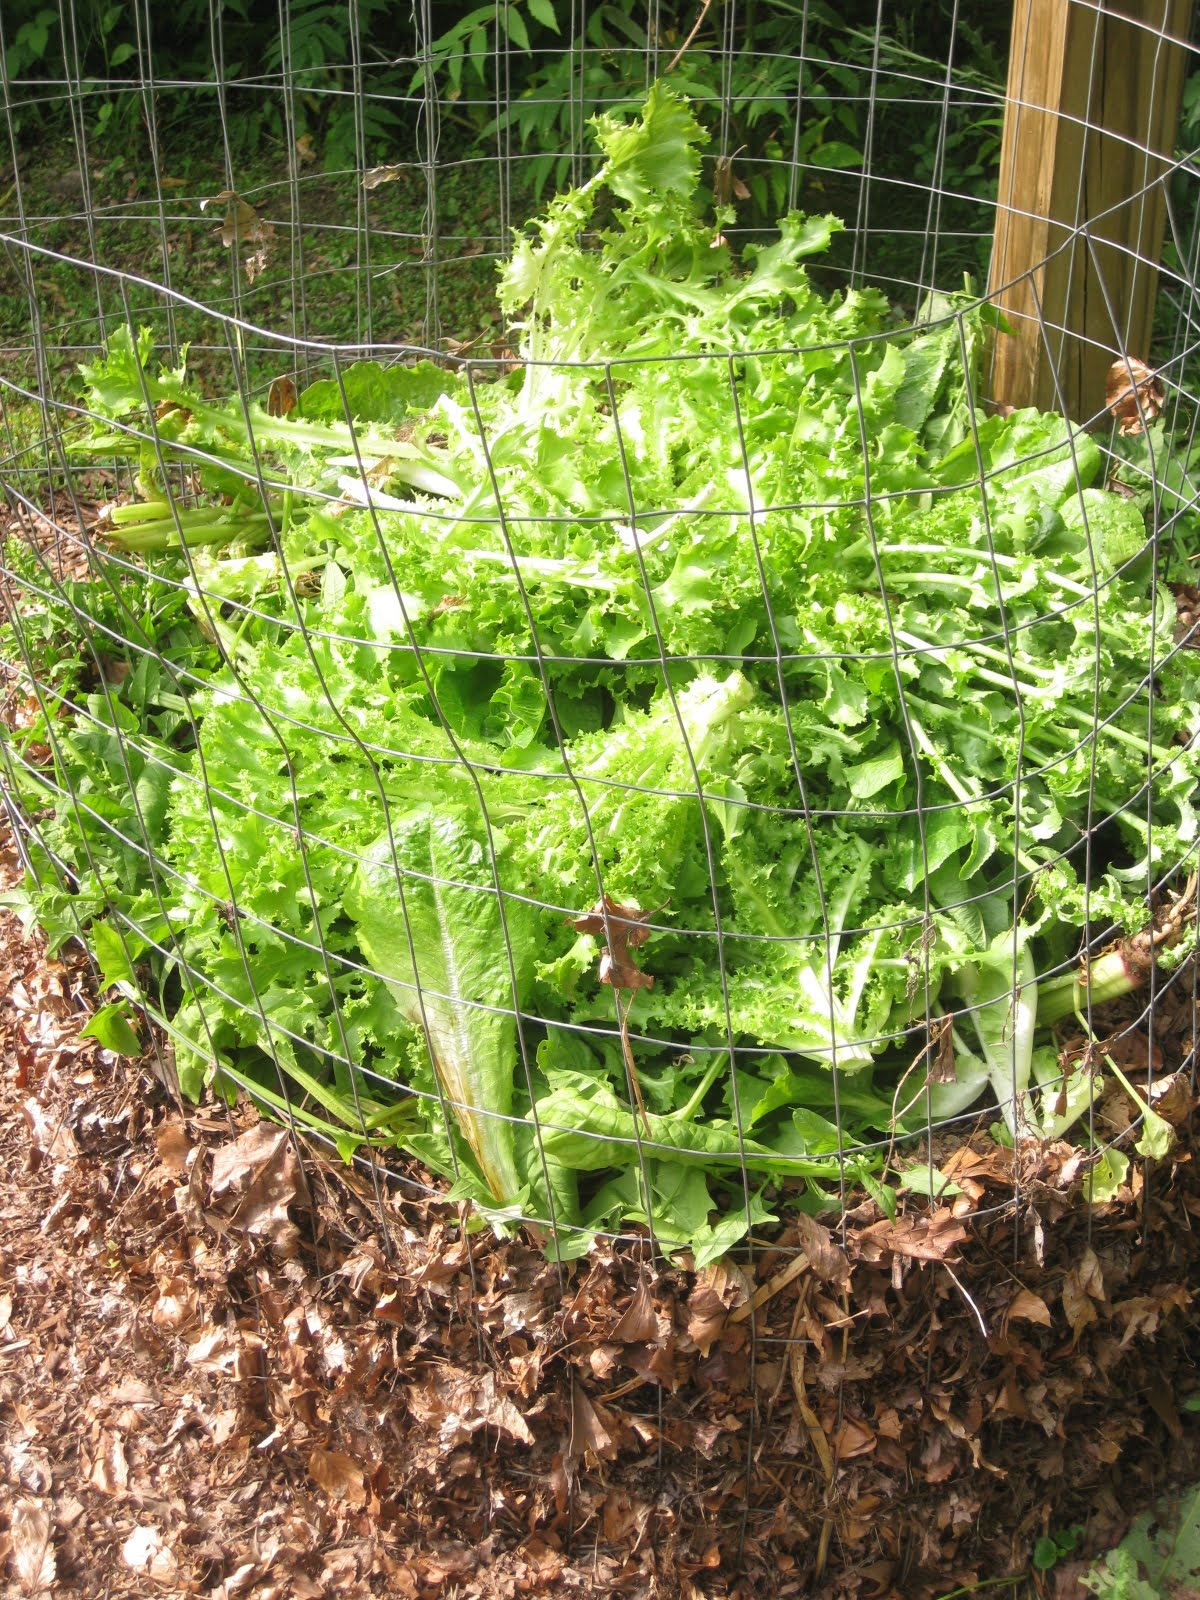 My Wire-Mesh Composting-System